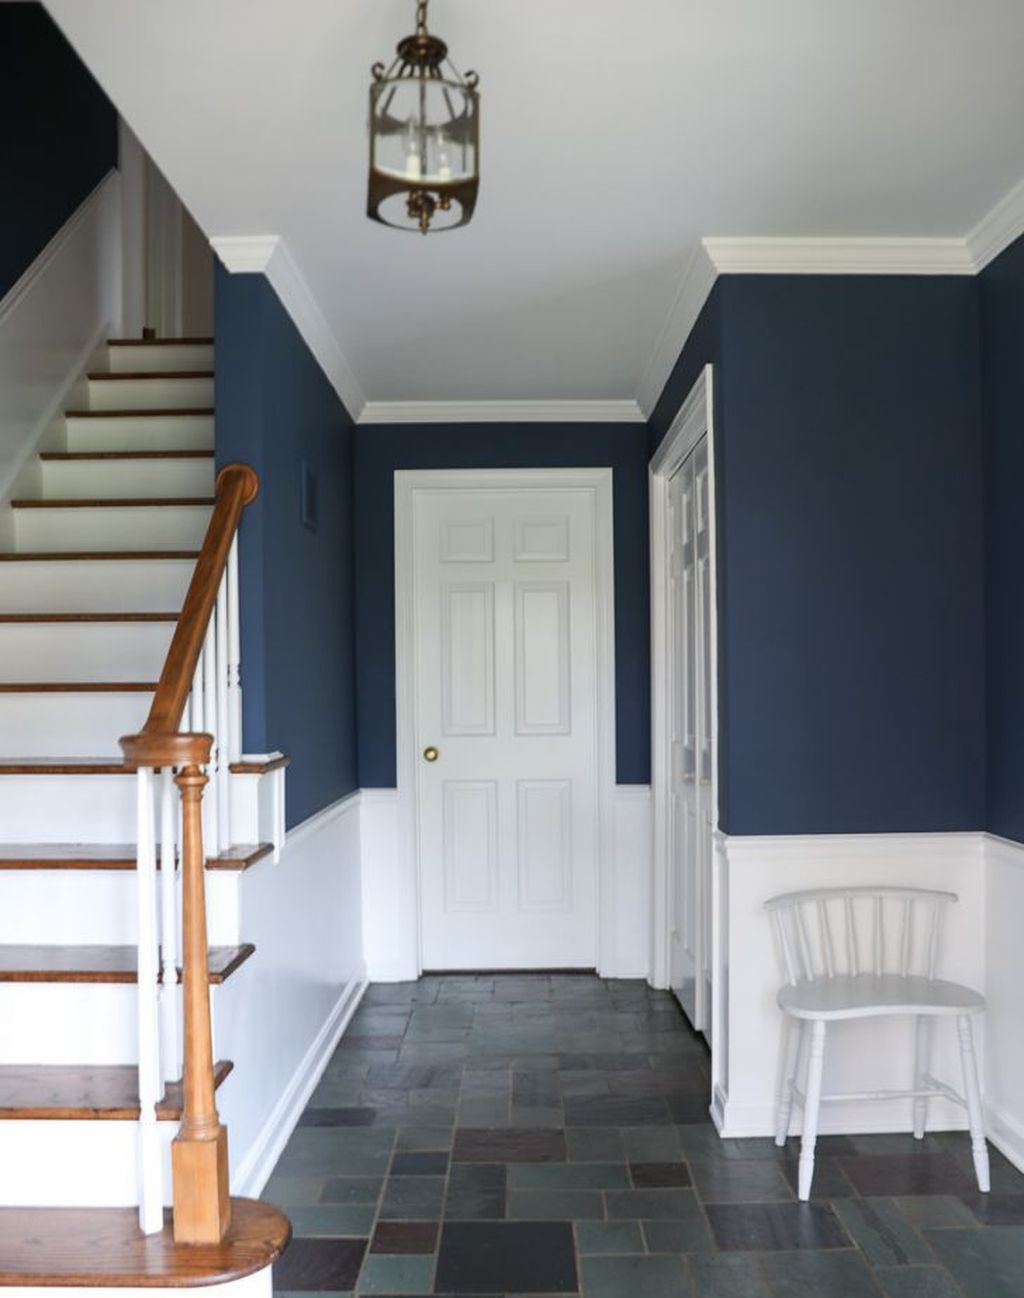 Splendid Entryway Home Décor Ideas That Make Your Place Look Cool 30